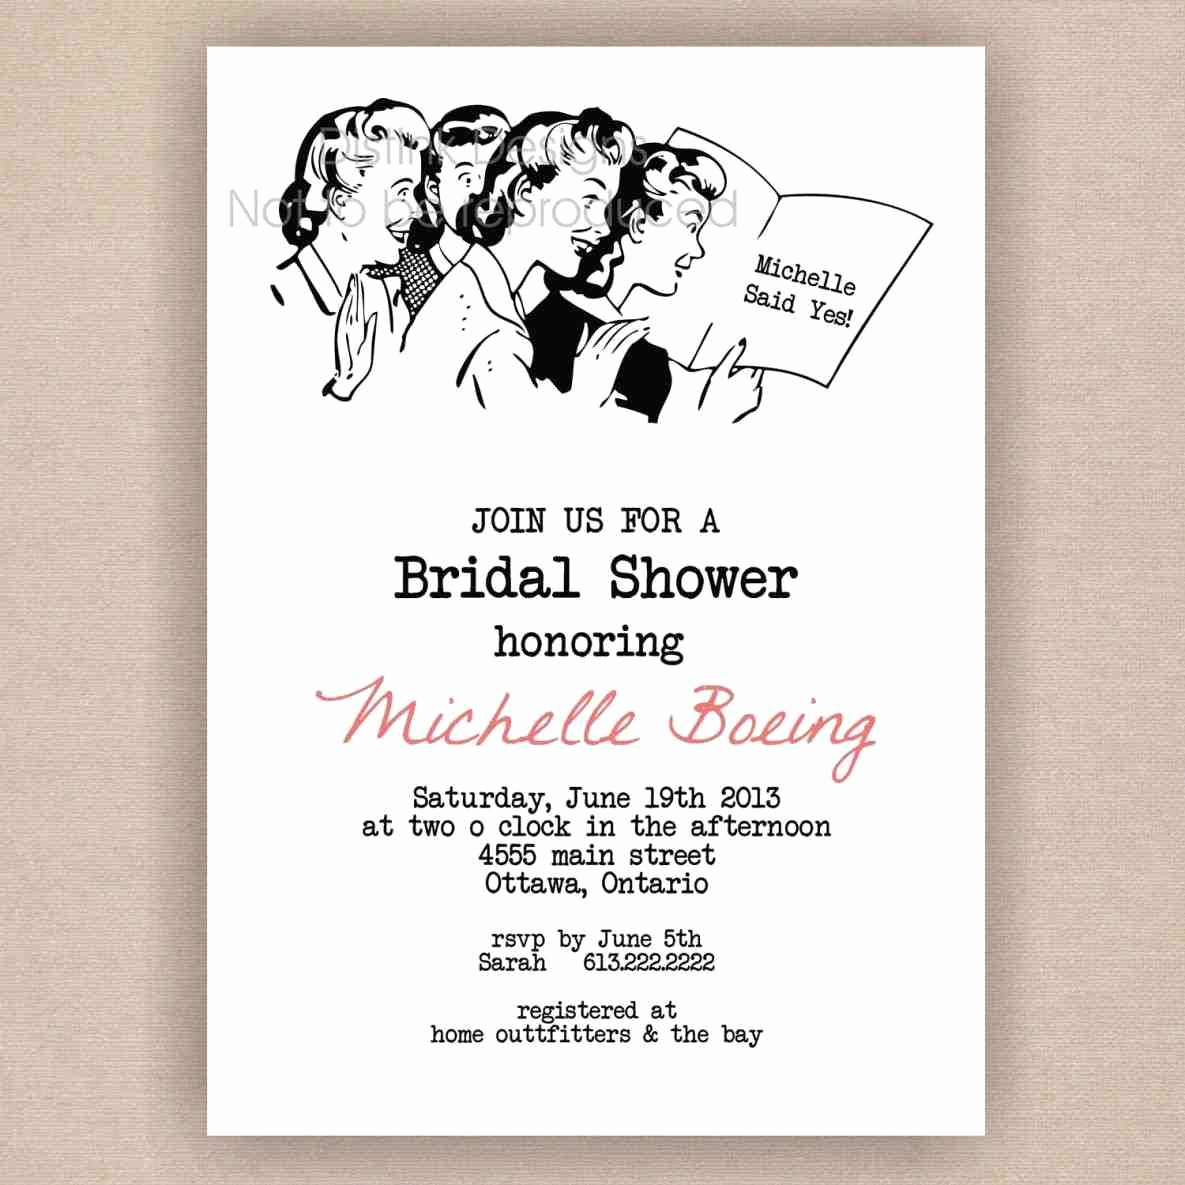 Bridal Shower Invitation Poems Unique Surprise Party Invitation Text Image Collections Party